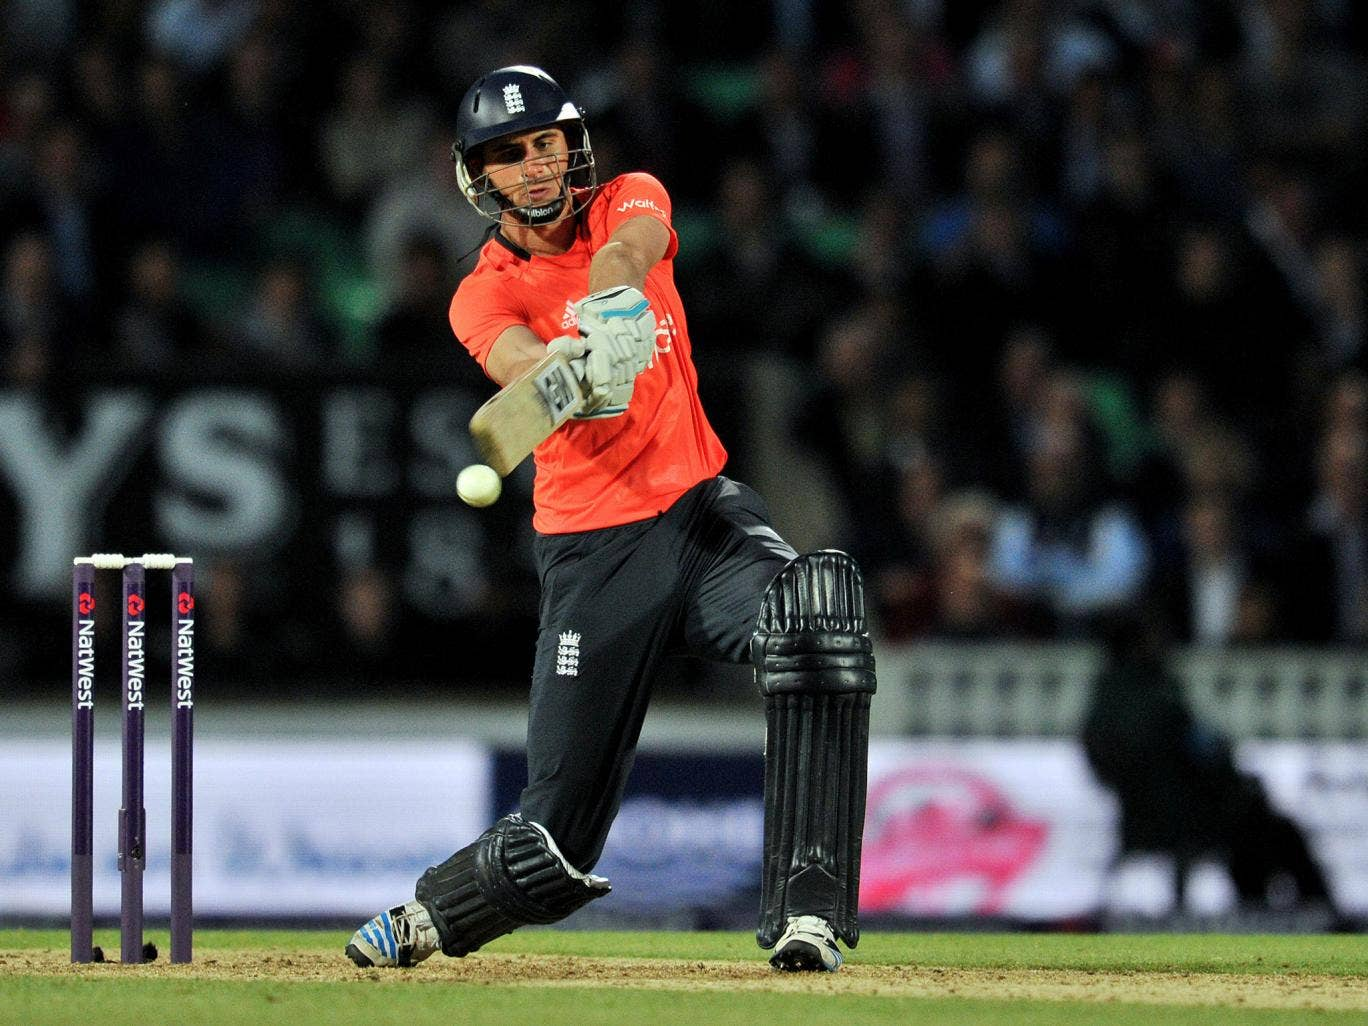 Alex Hales has agreed to join Hobart Hurricanes for the 2014-15 Big Bash League